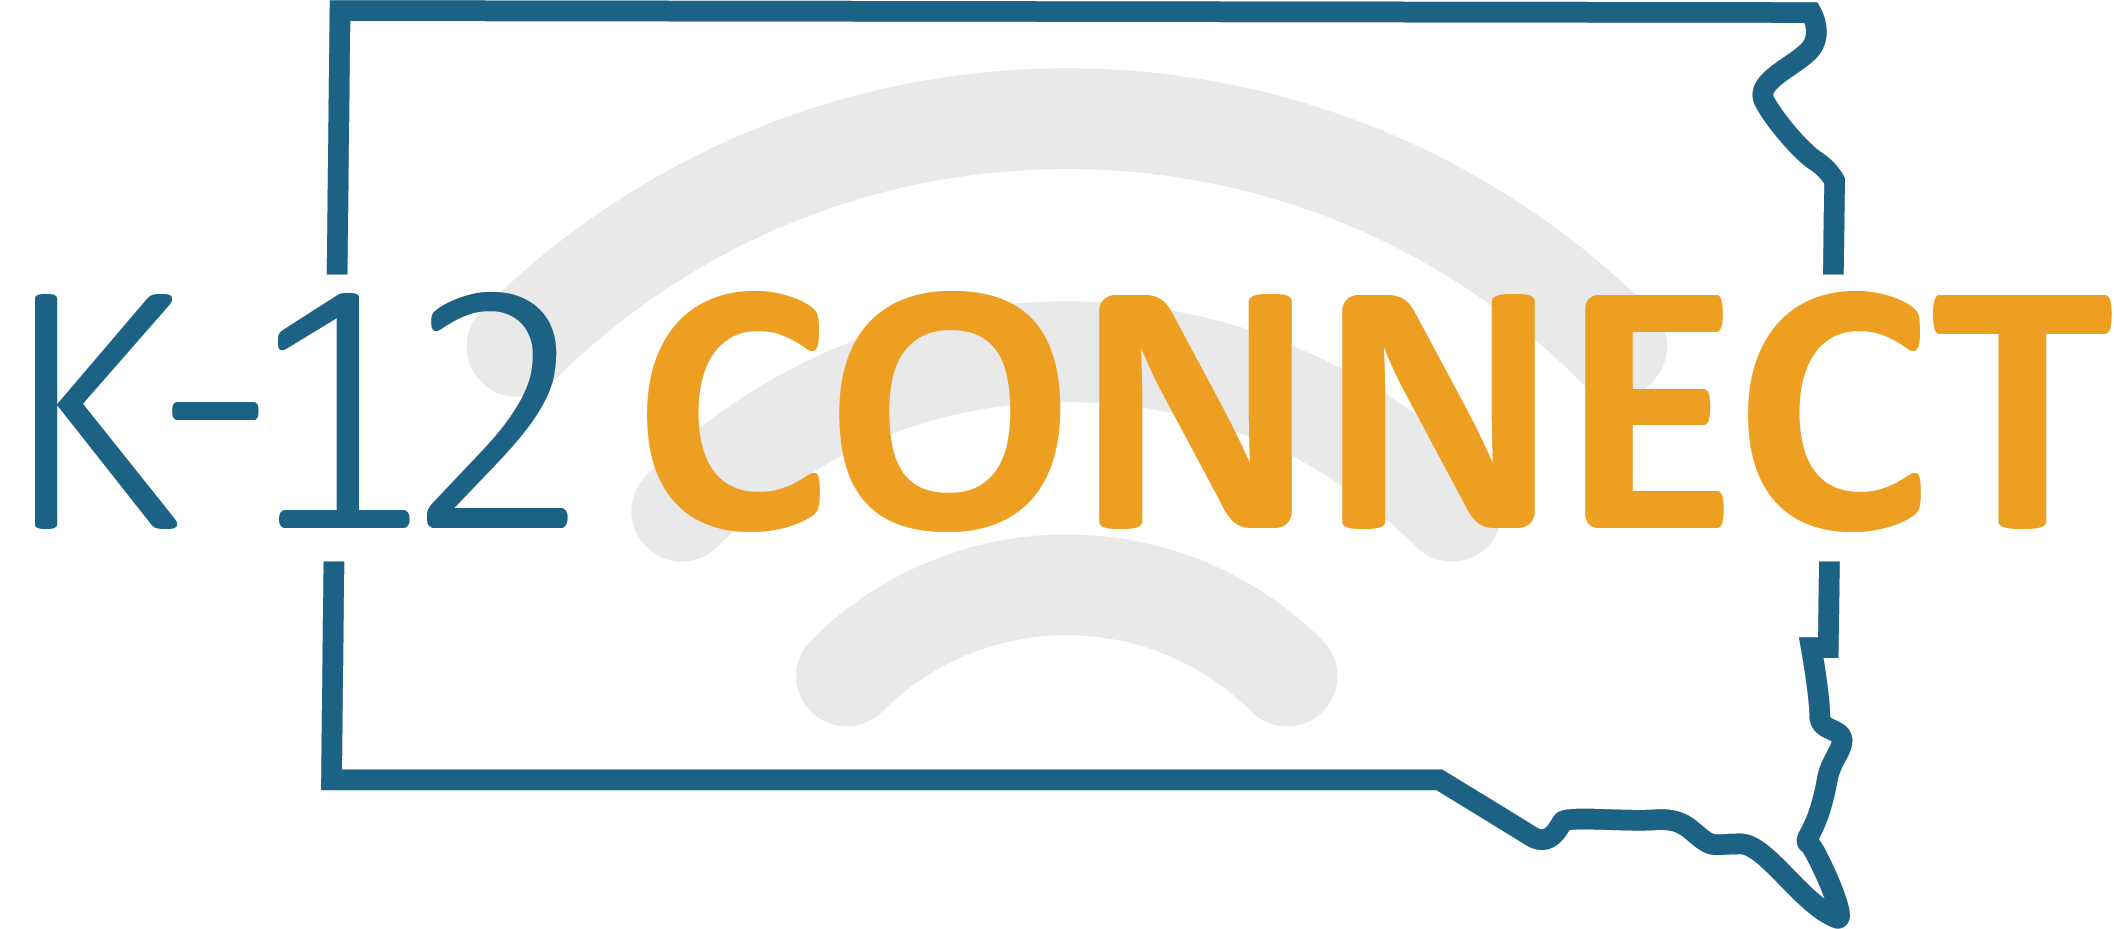 K-12 Connect